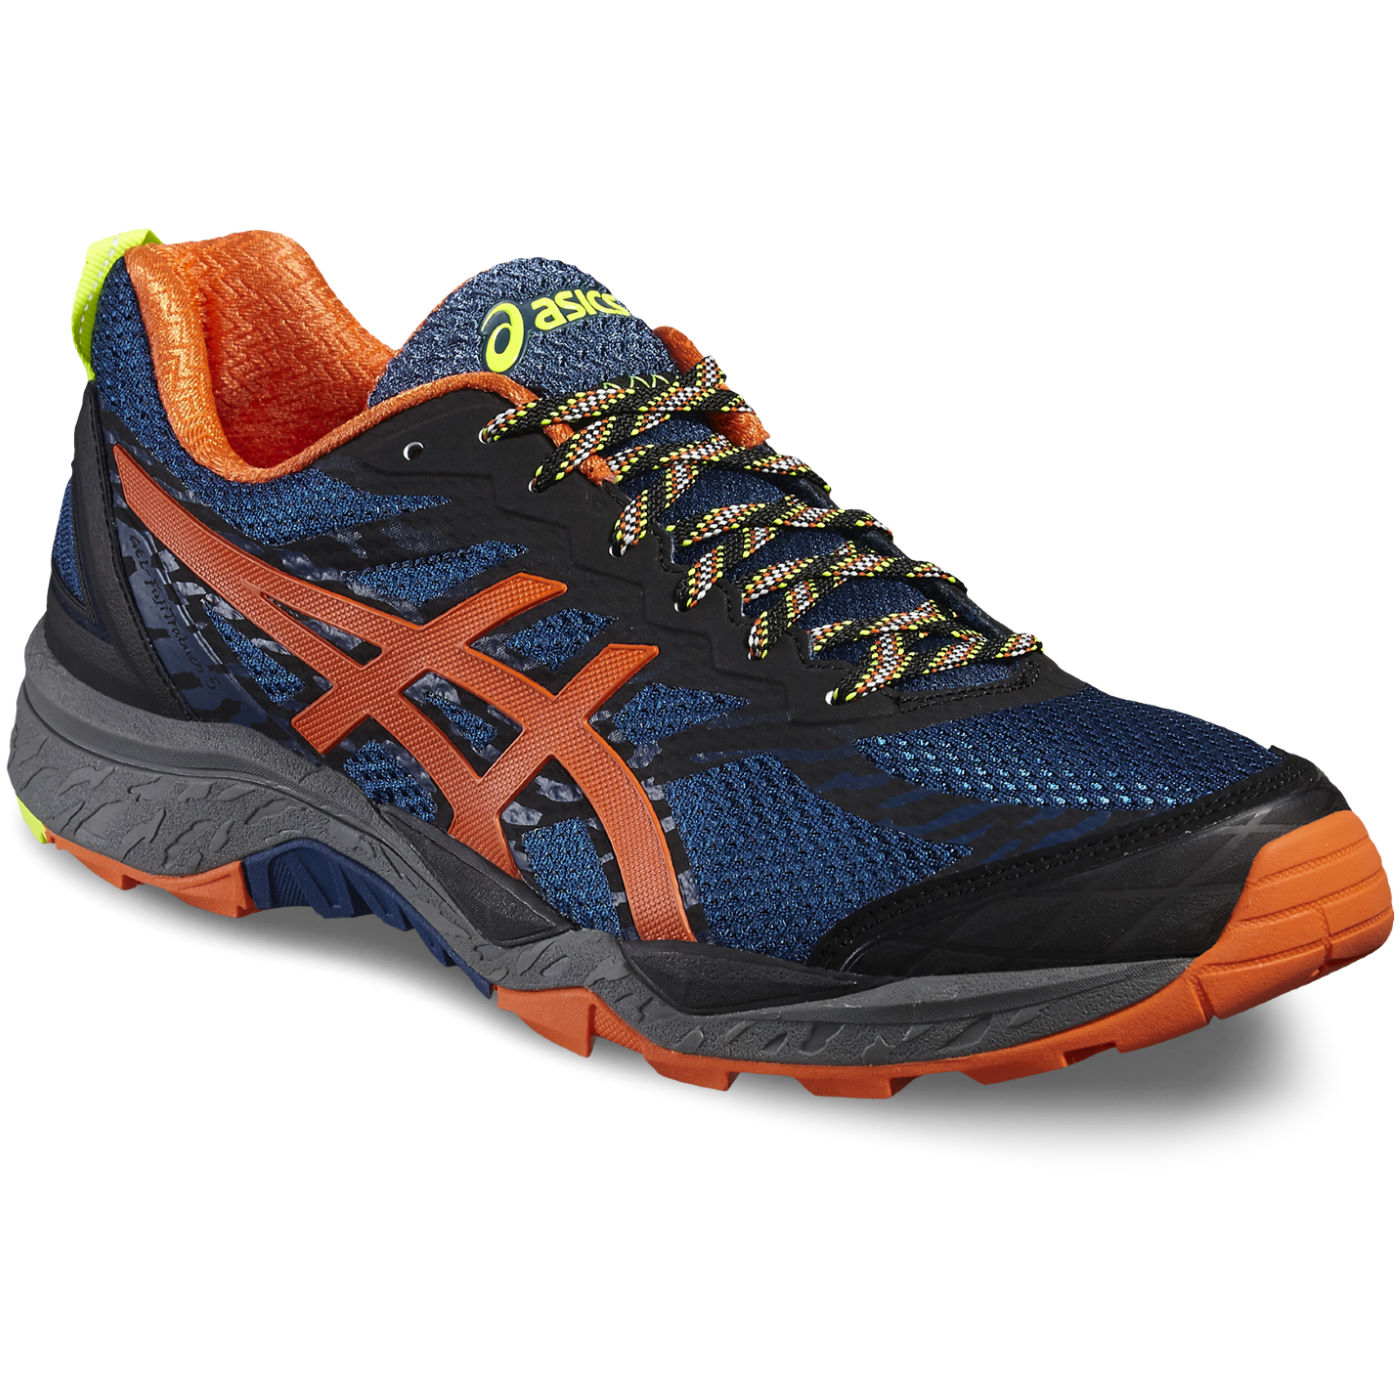 wiggle asics gel fujitrabuco 5 shoes aw16 offroad running shoes. Black Bedroom Furniture Sets. Home Design Ideas